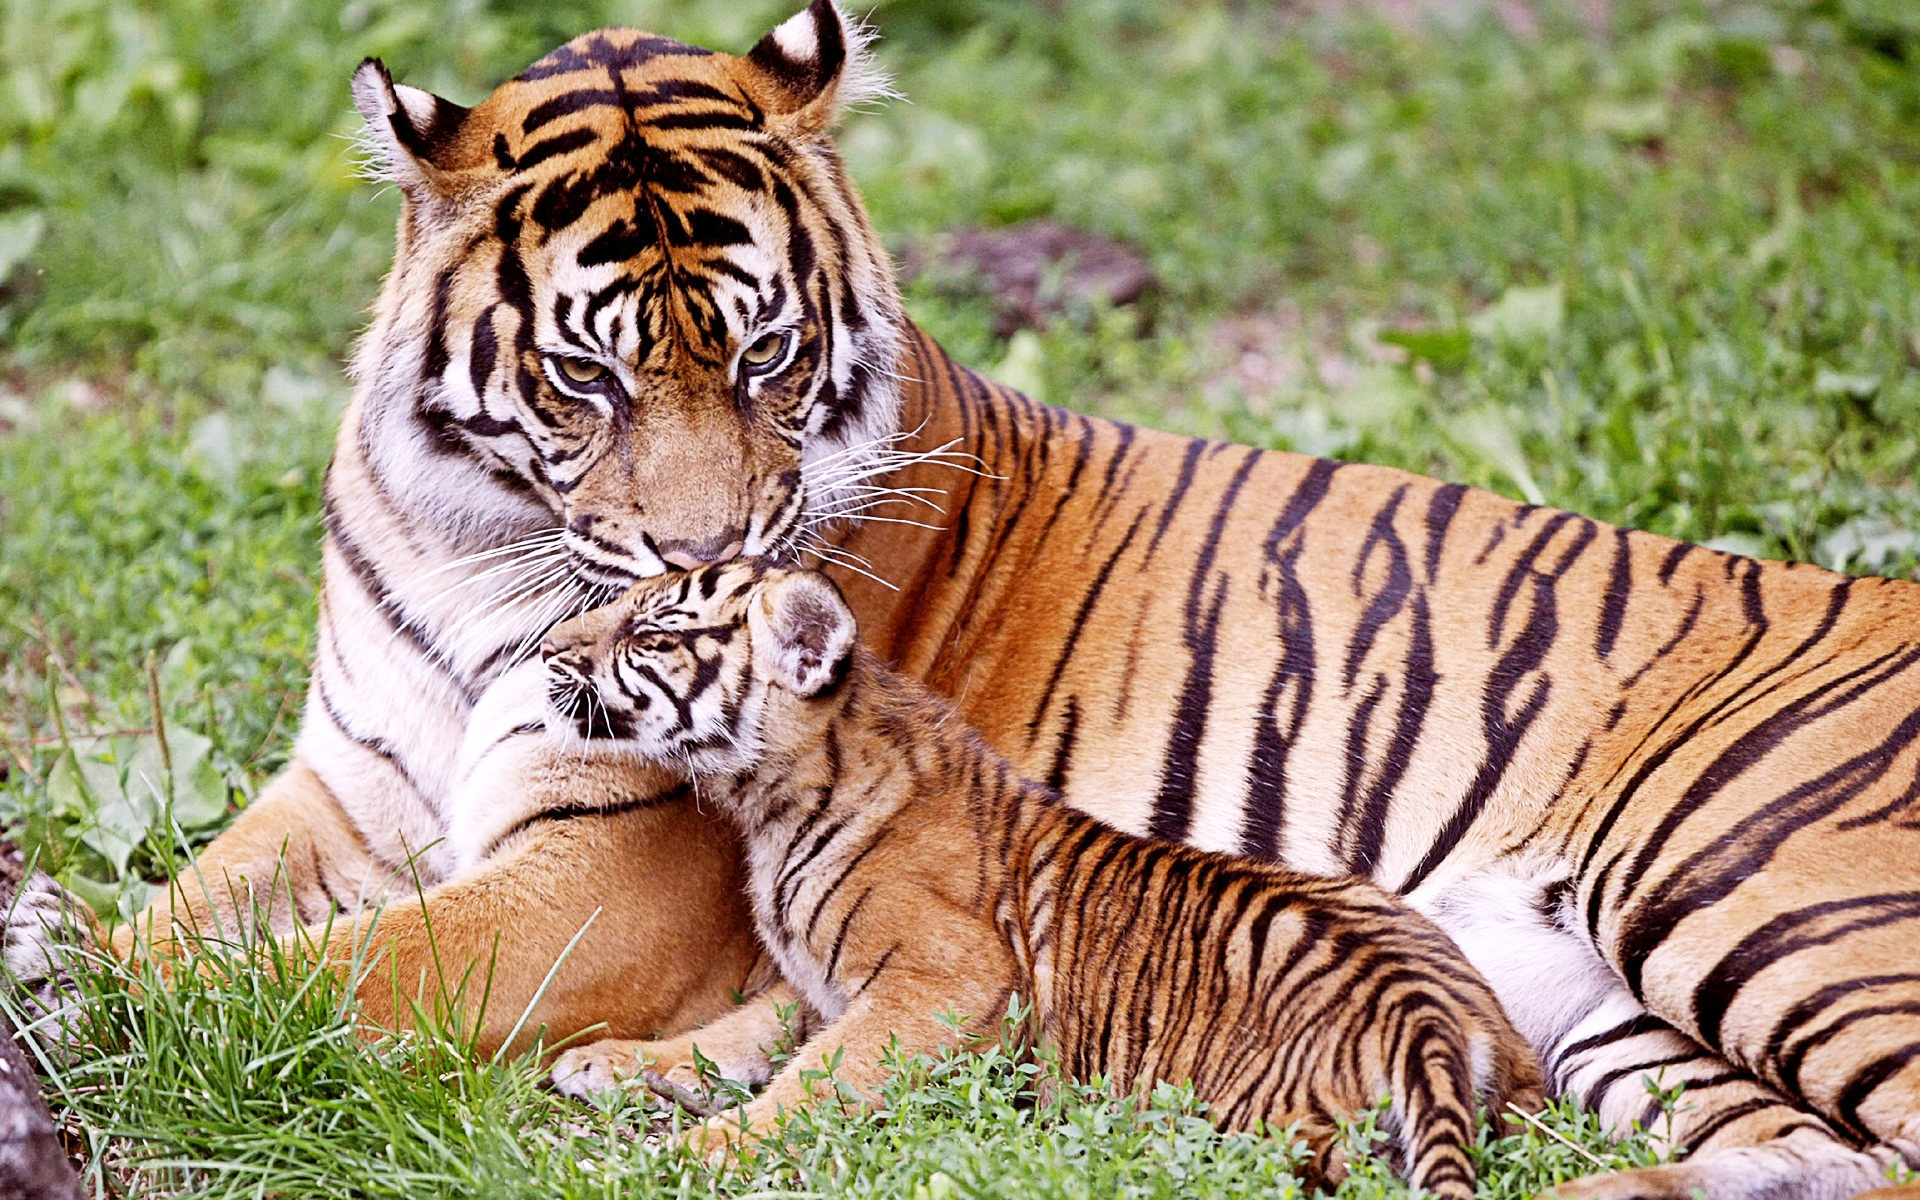 sweet wallpaper of tigers a tiger is kissing her baby